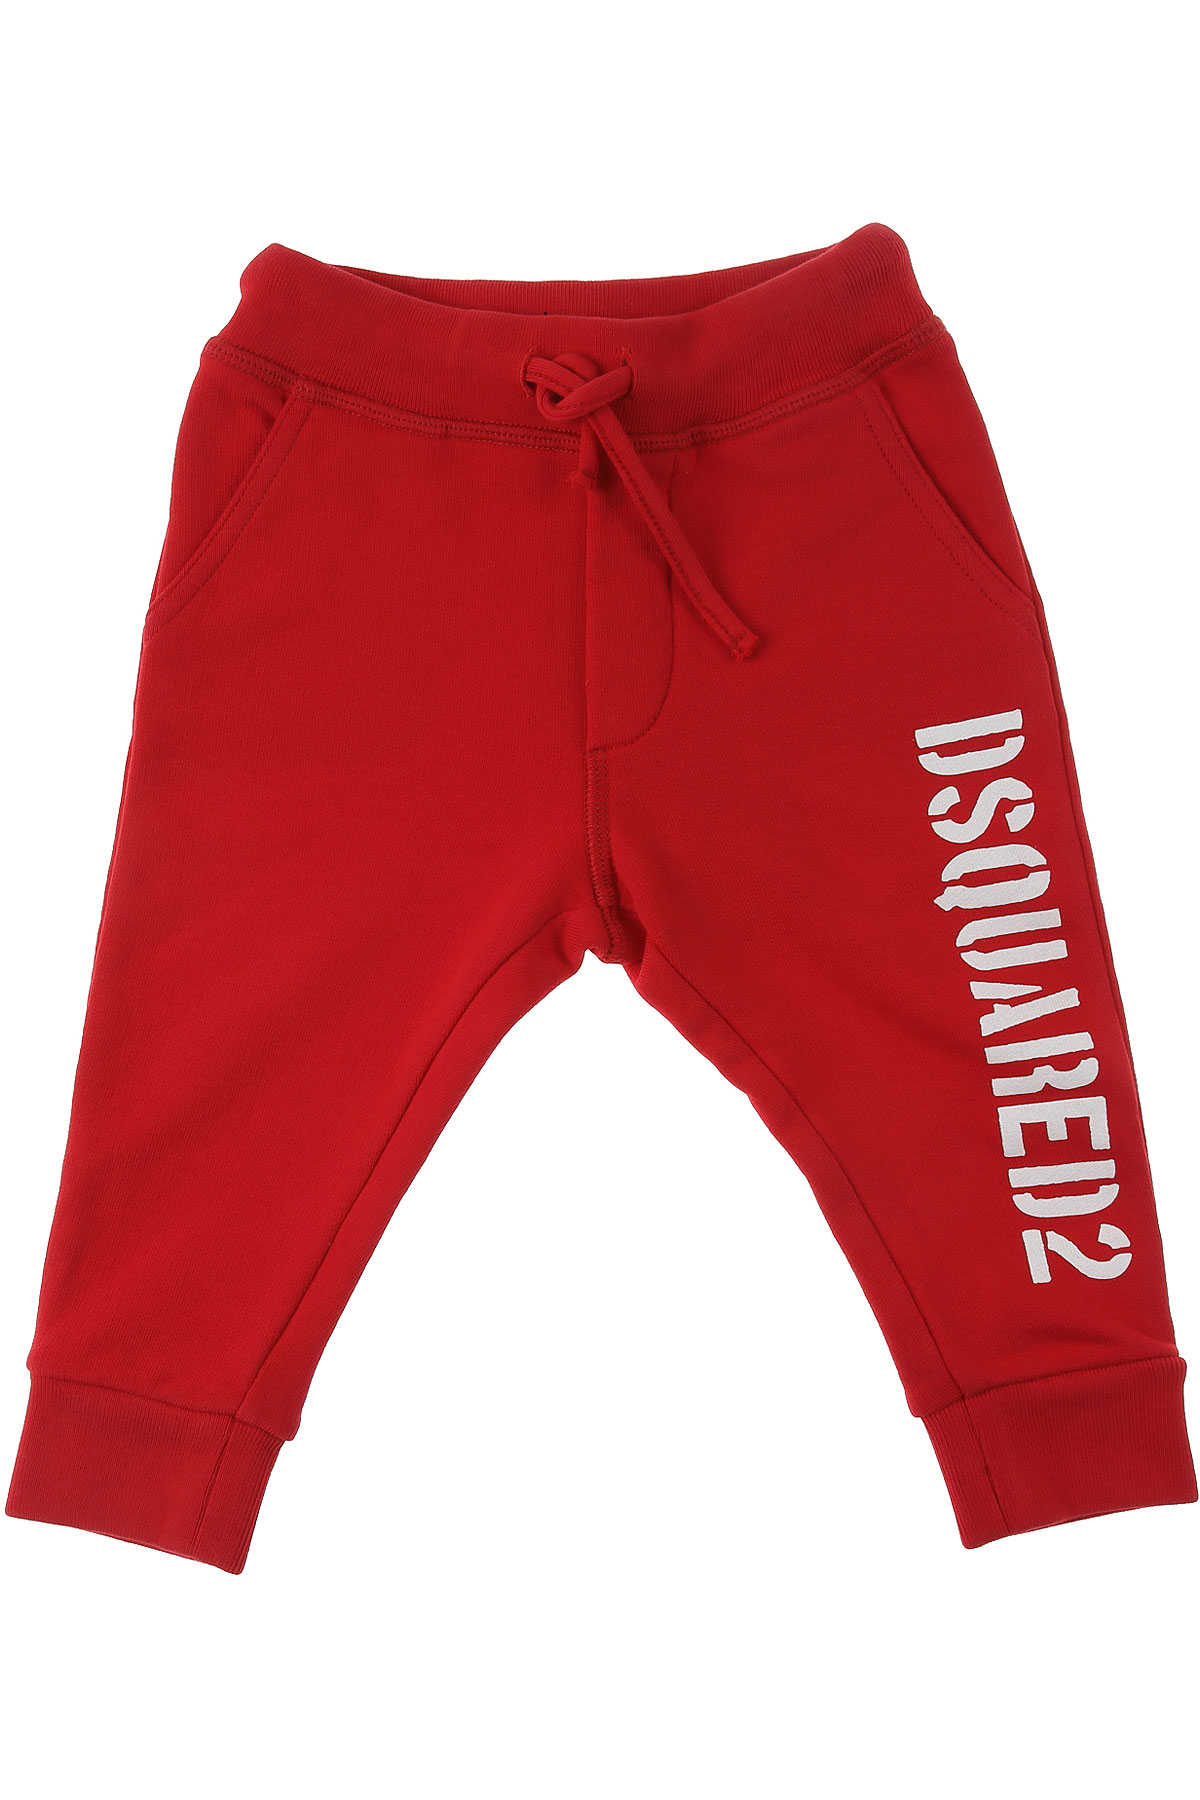 Dsquared2 Baby Pants for Boys On Sale, Red, Cotton, 2019, 12 M 3Y 9 M